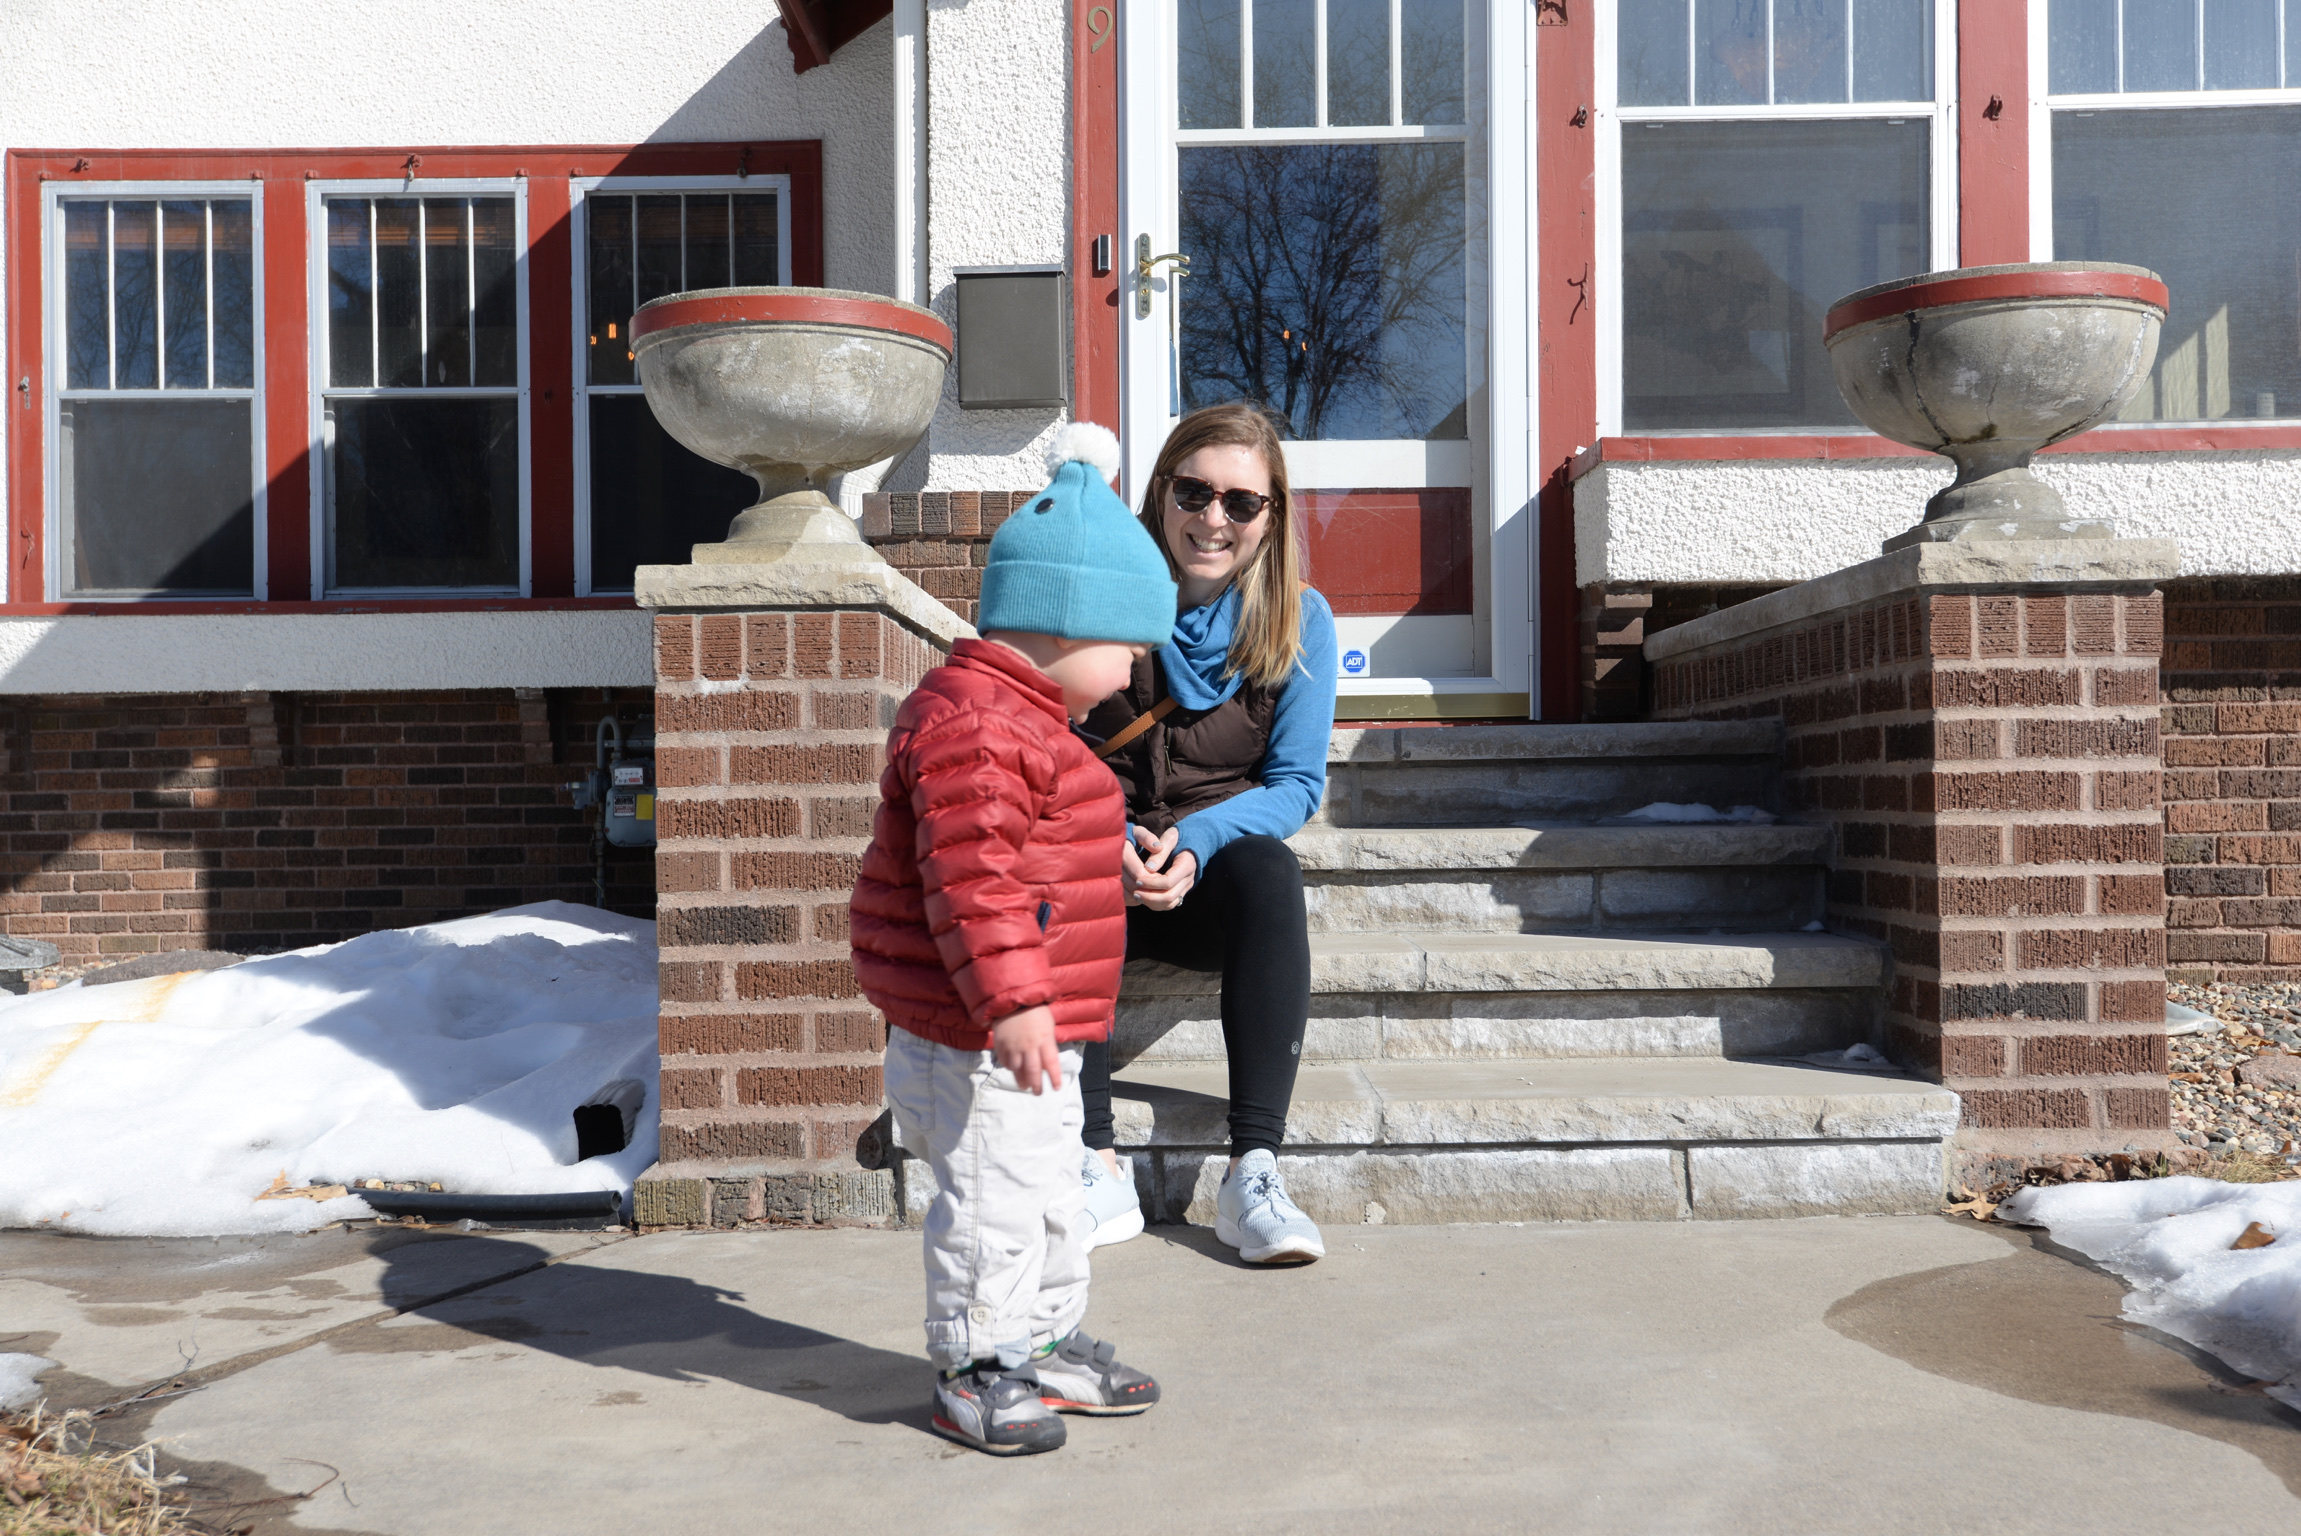 Ian the dynamo on the house hunt with Mom in Kingfield, spring 2018.